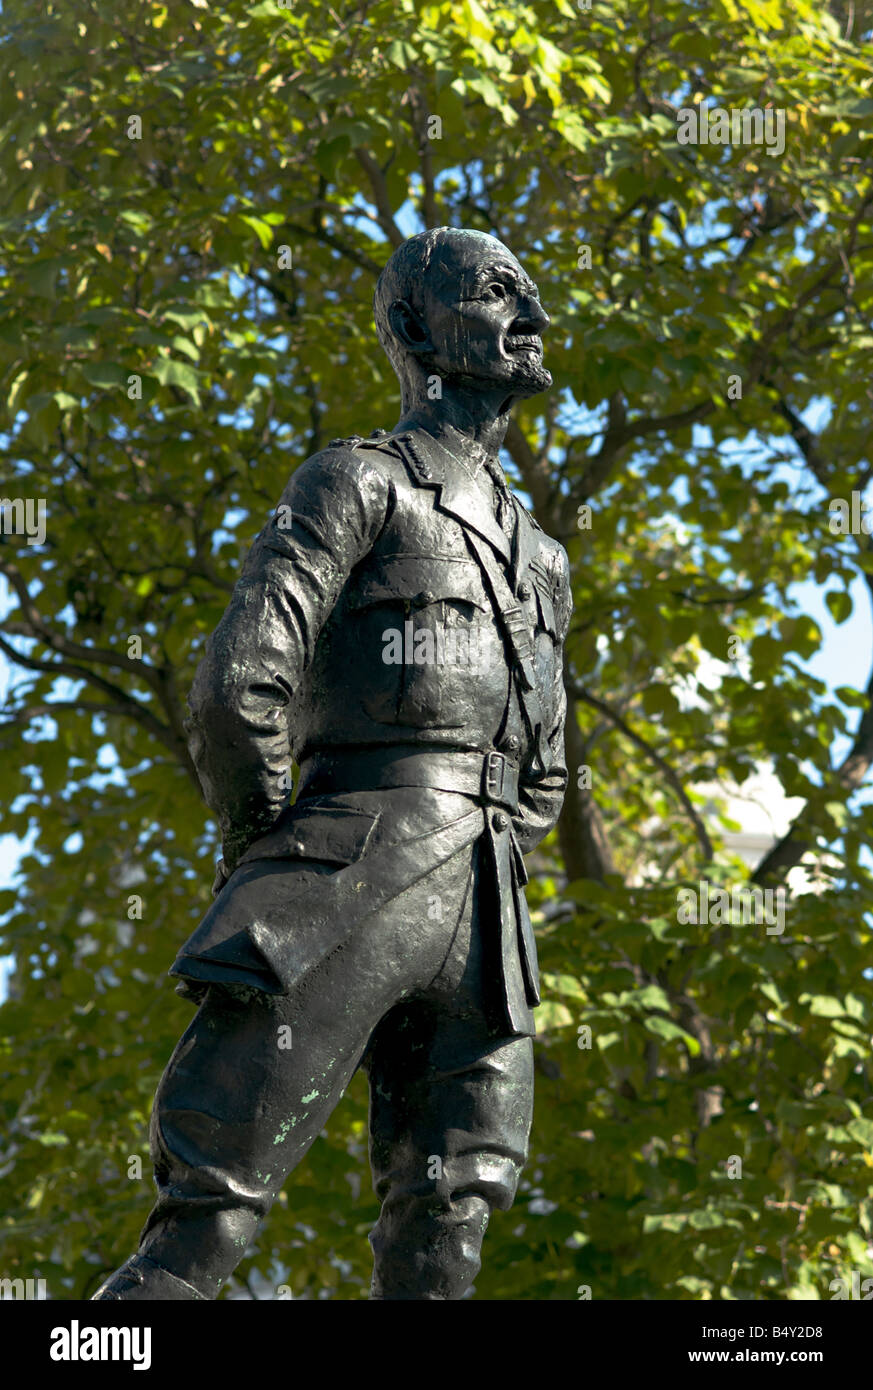 Statue of Field Marshal Jan Christain Smuts in Parliament Square in London UK by the sculptor Jacob Epstein - Stock Image